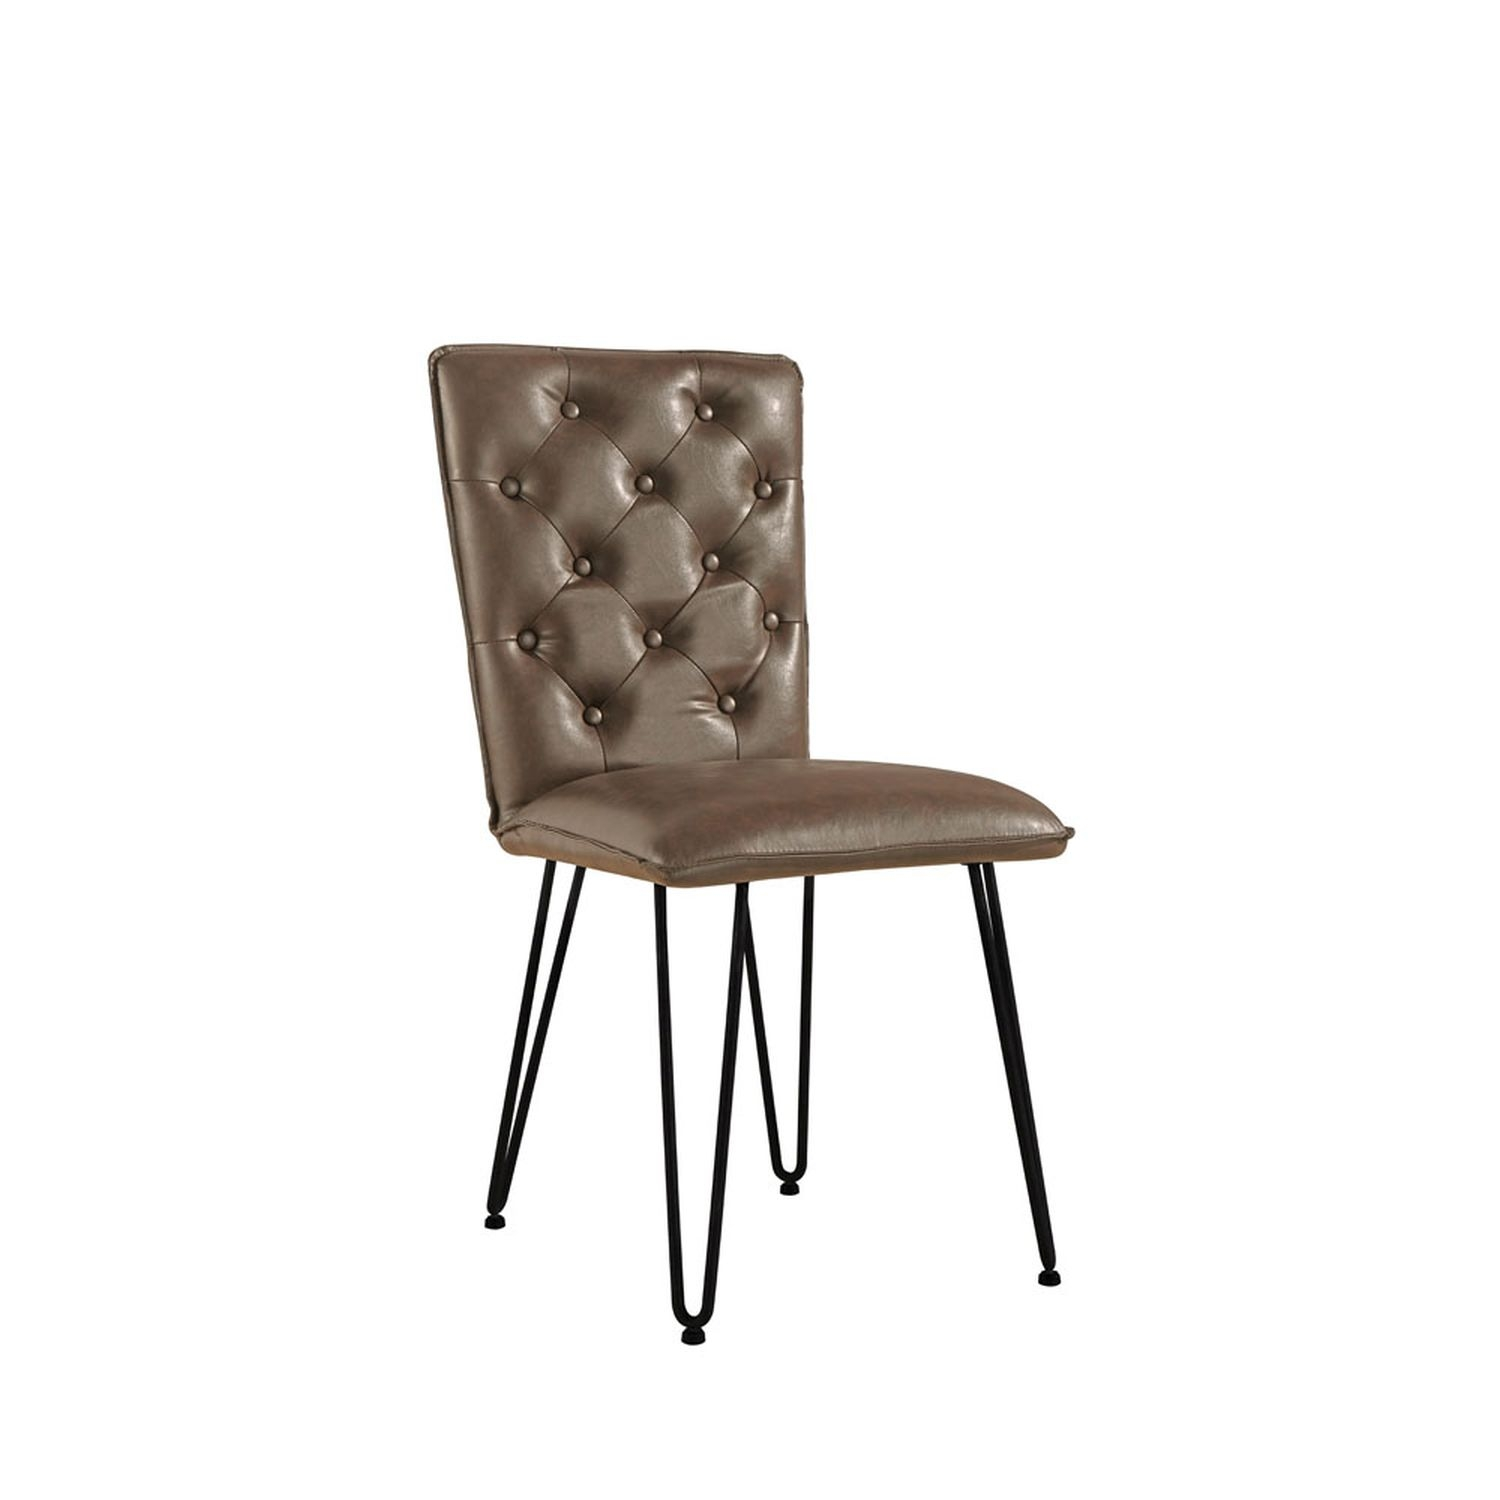 Image of Casa Pair Of Studded Dining Chairs, Brown